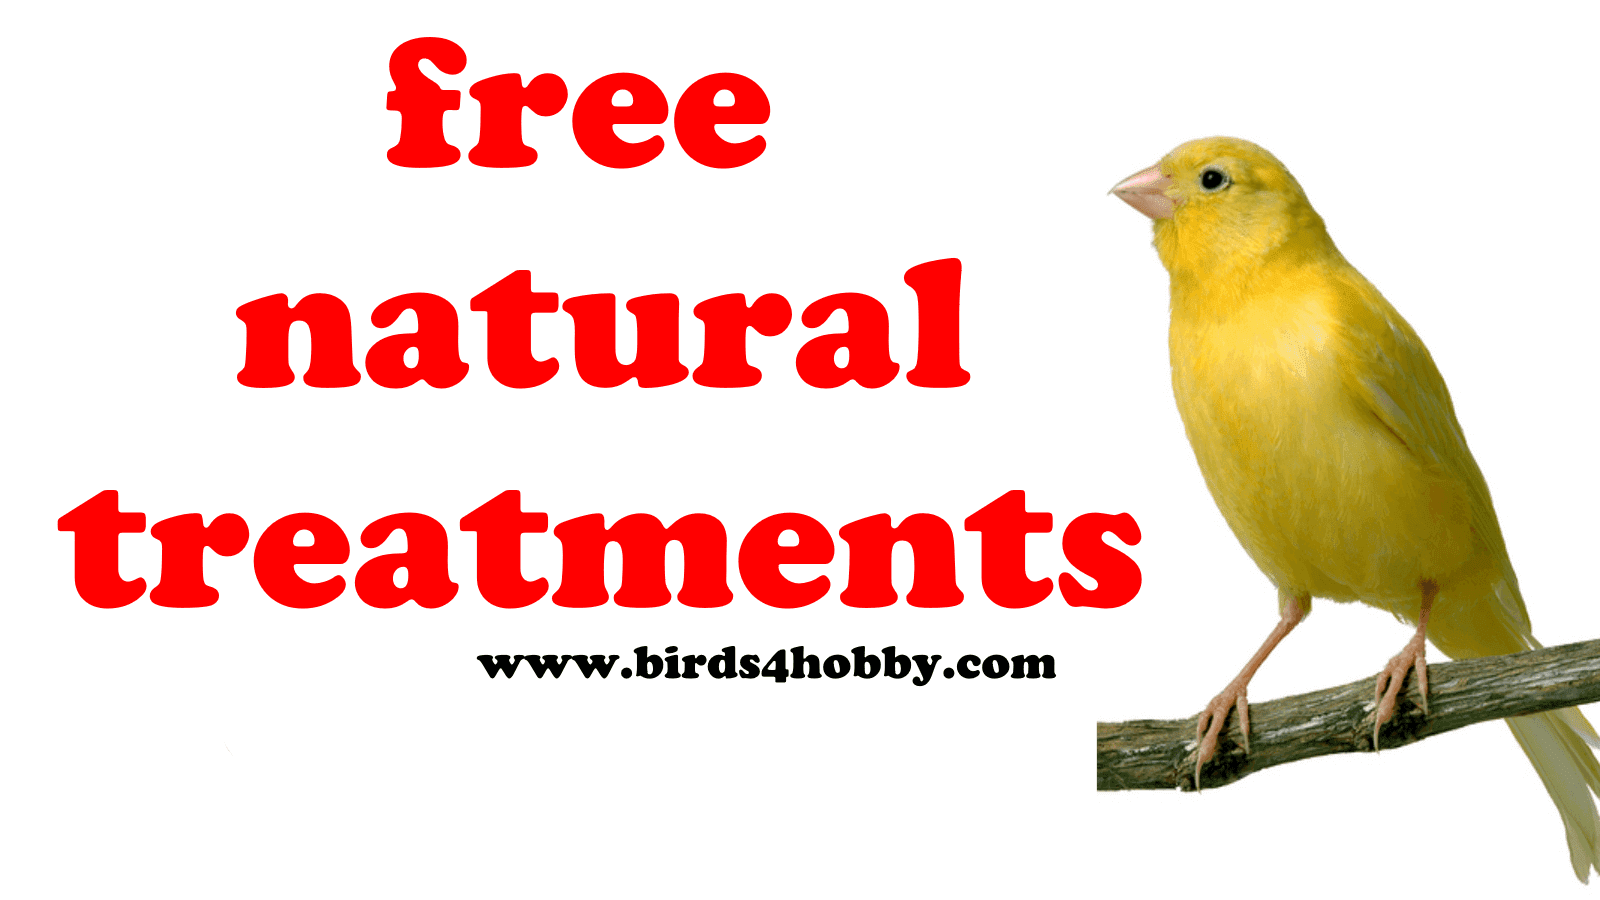 Free natural treatments for pets birds